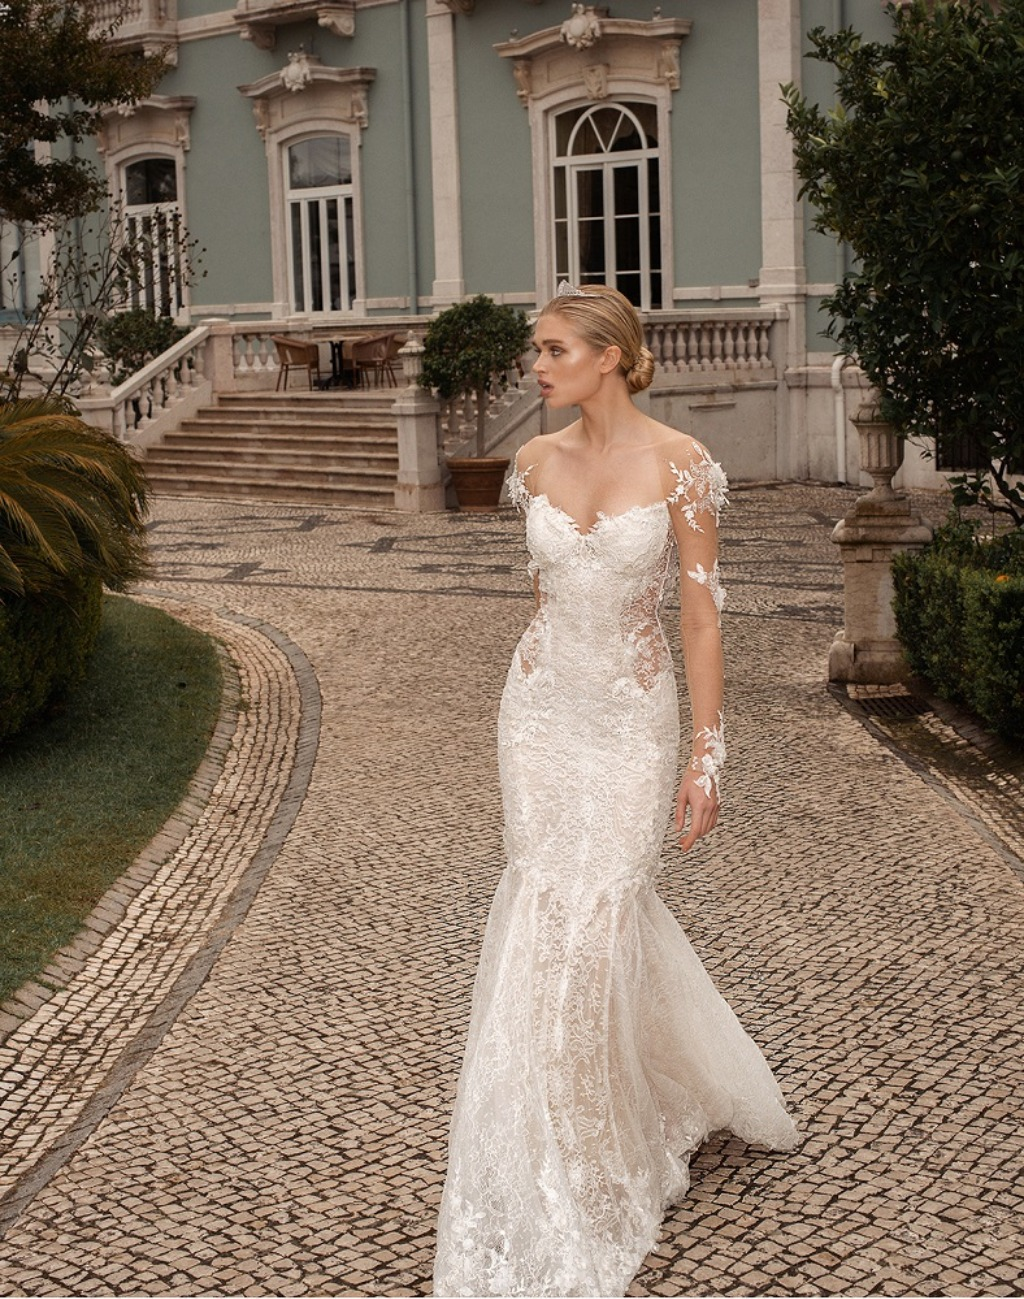 Galia Lahav Haute Couture Bridal Trunk Show